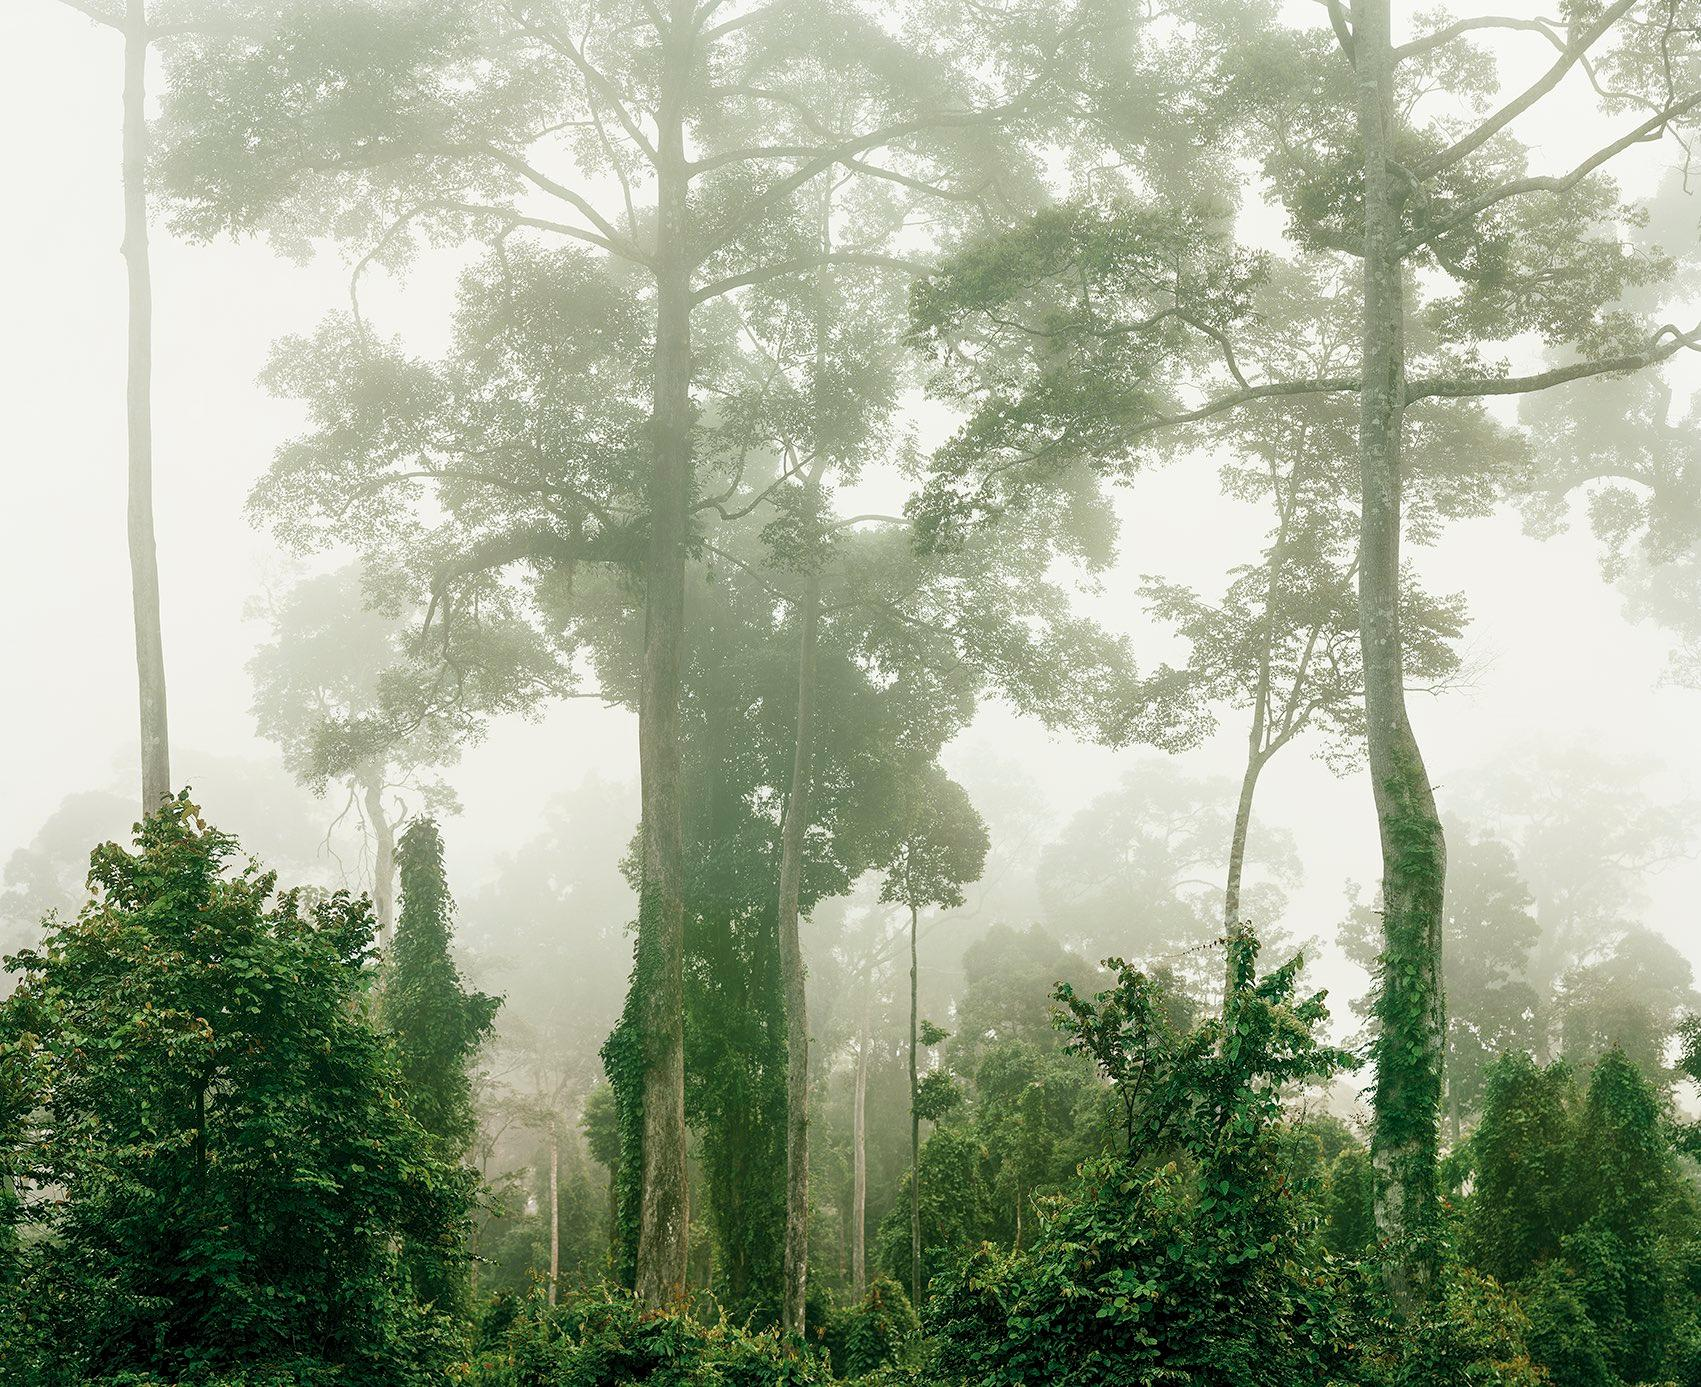 Primary Forest 06, Malaysia 10/2012 - Olaf Otto Becker